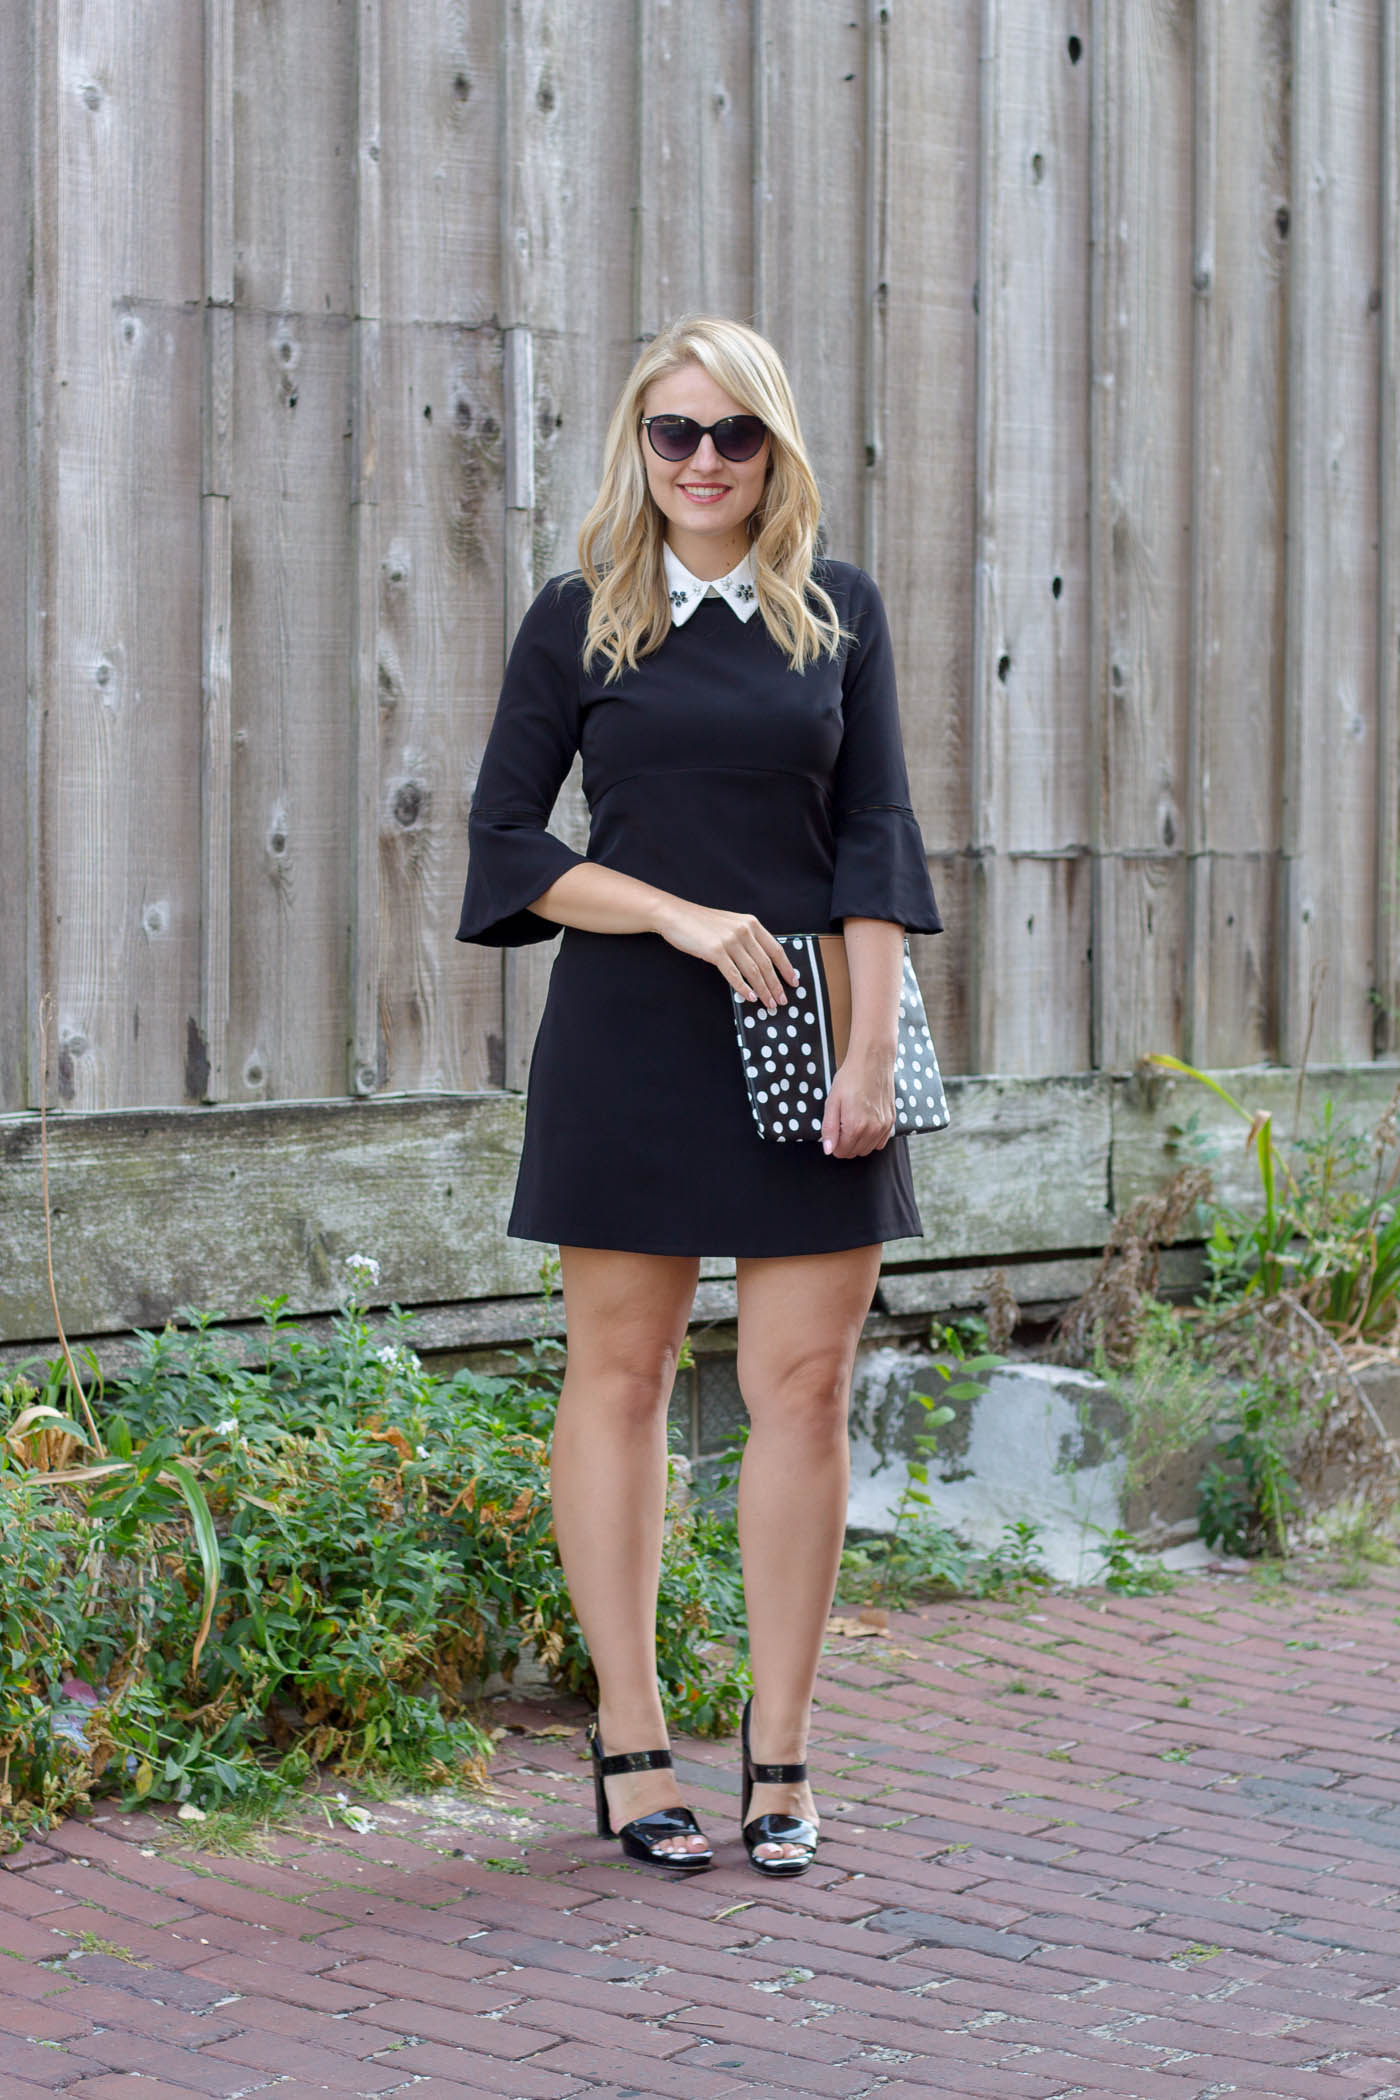 How to style a black dress this fall